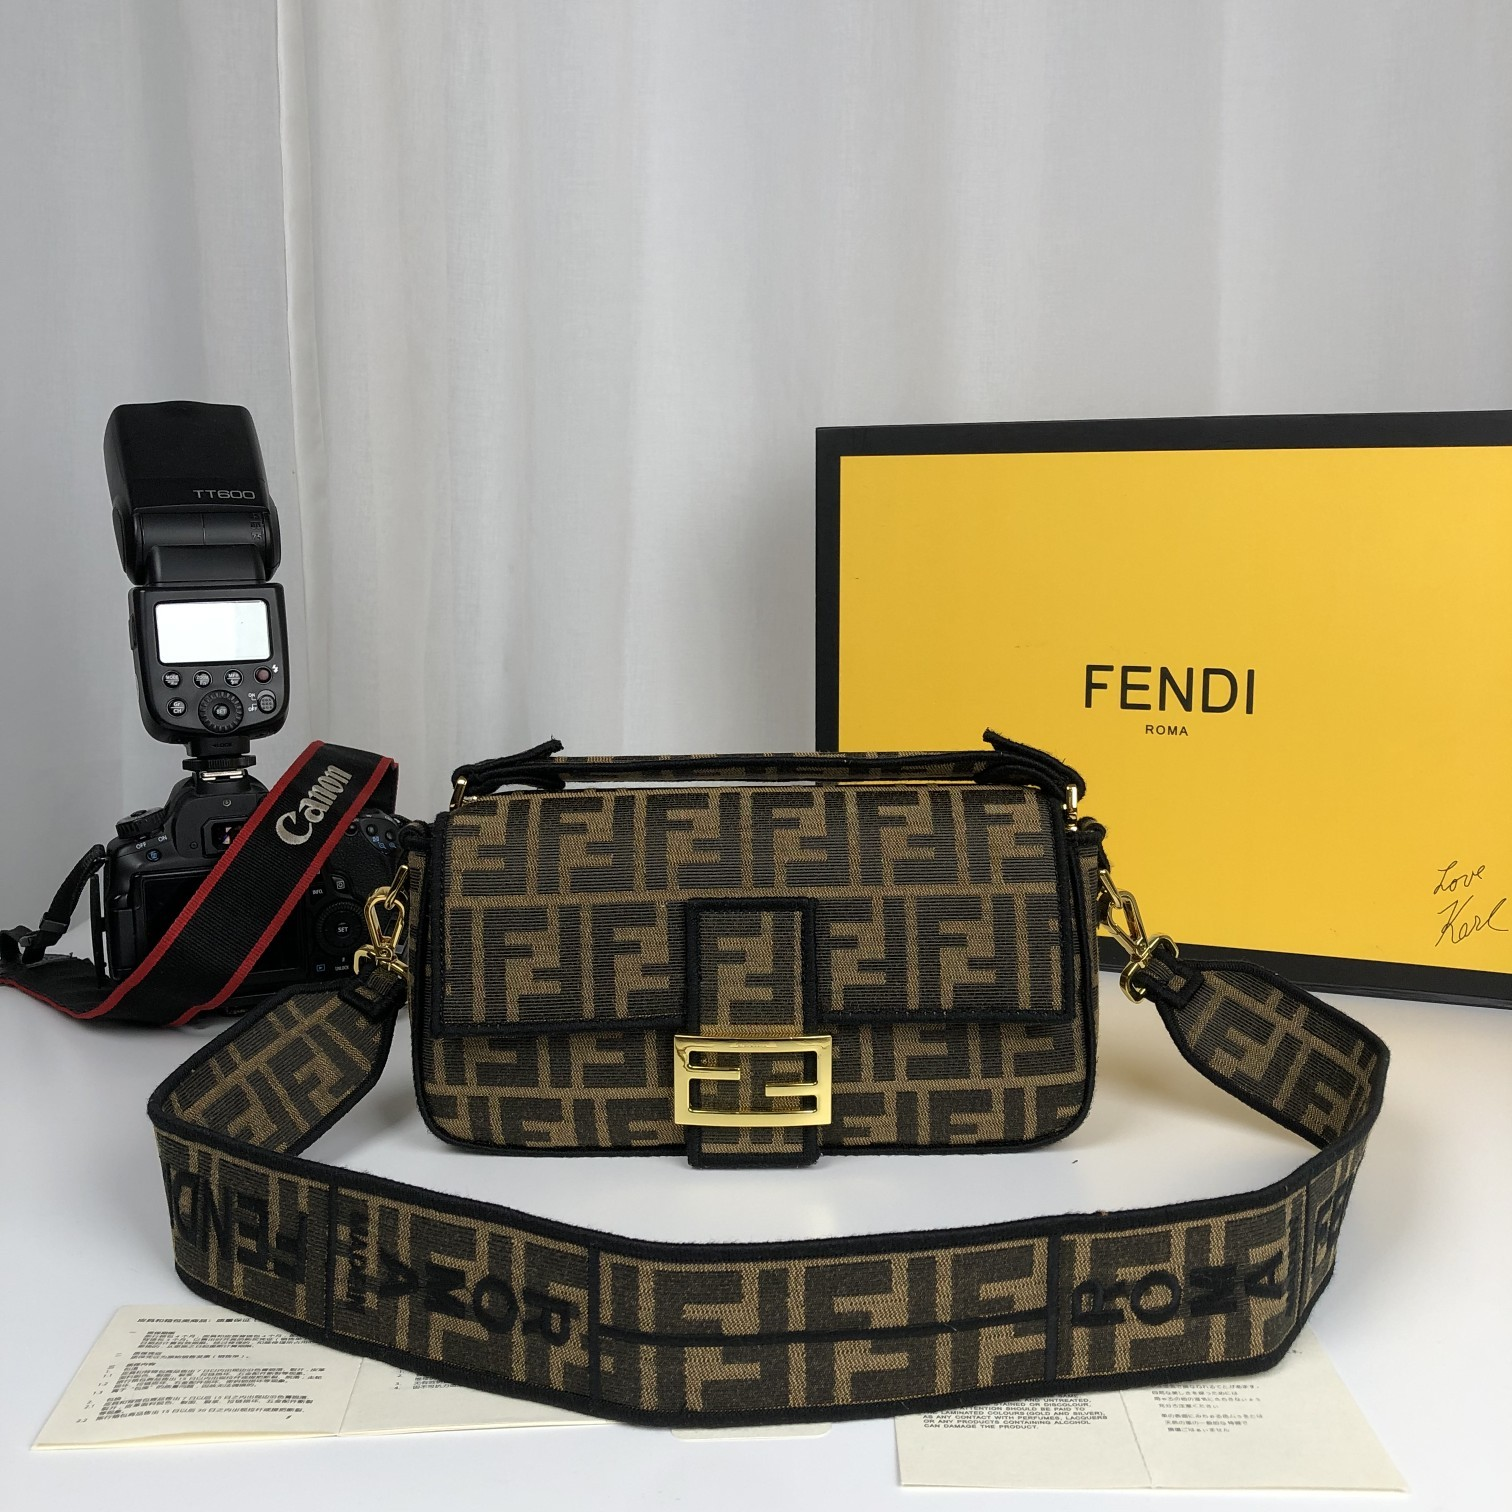 Replica Fendi Baguette Brown Fabric Medium Bag with Flap and FF Fastening with Magnetic Clasp